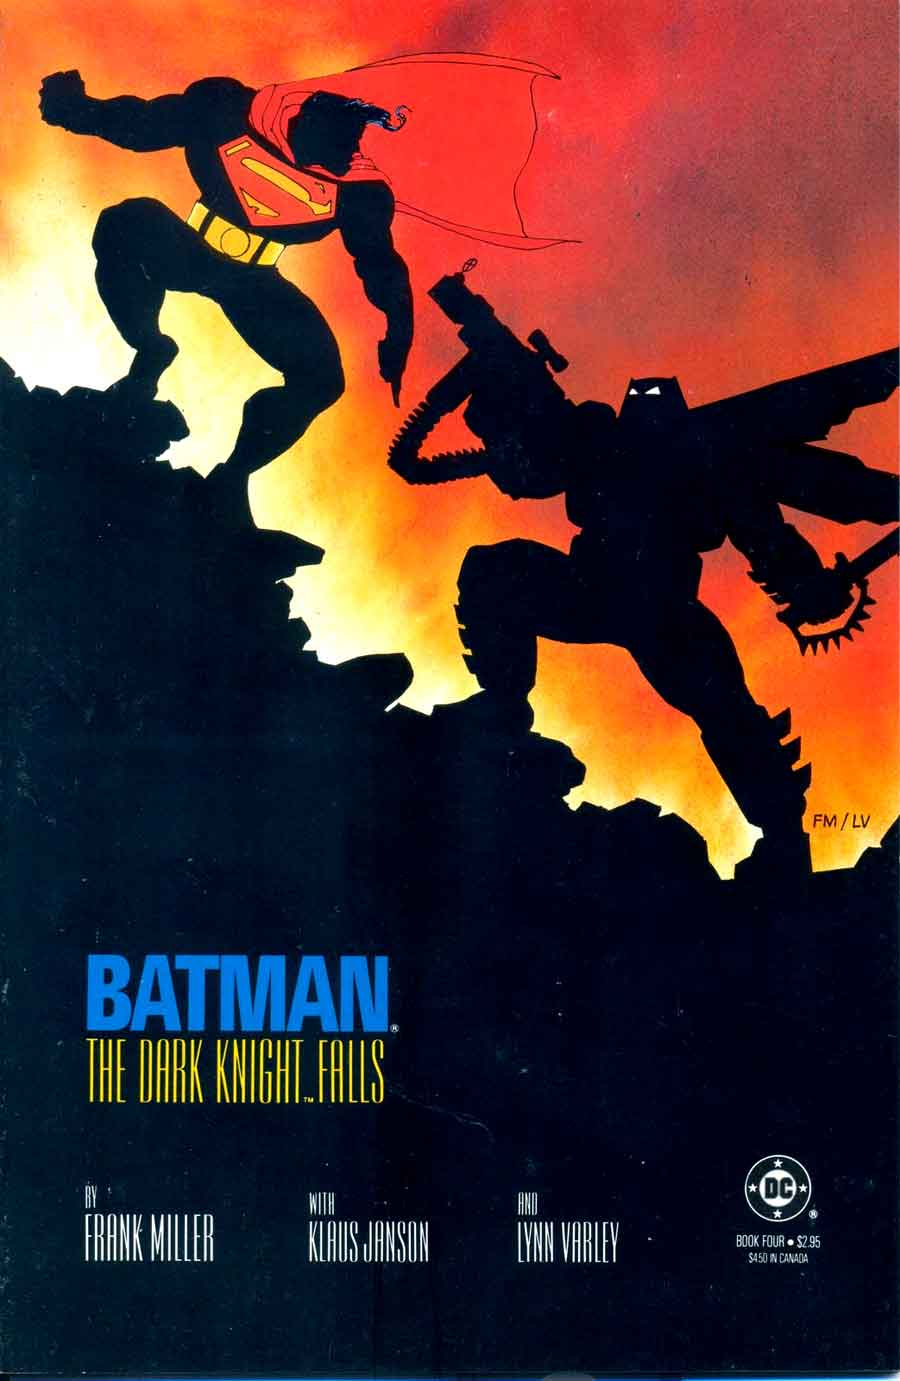 batman the dark knight 4 frank miller art amp cover